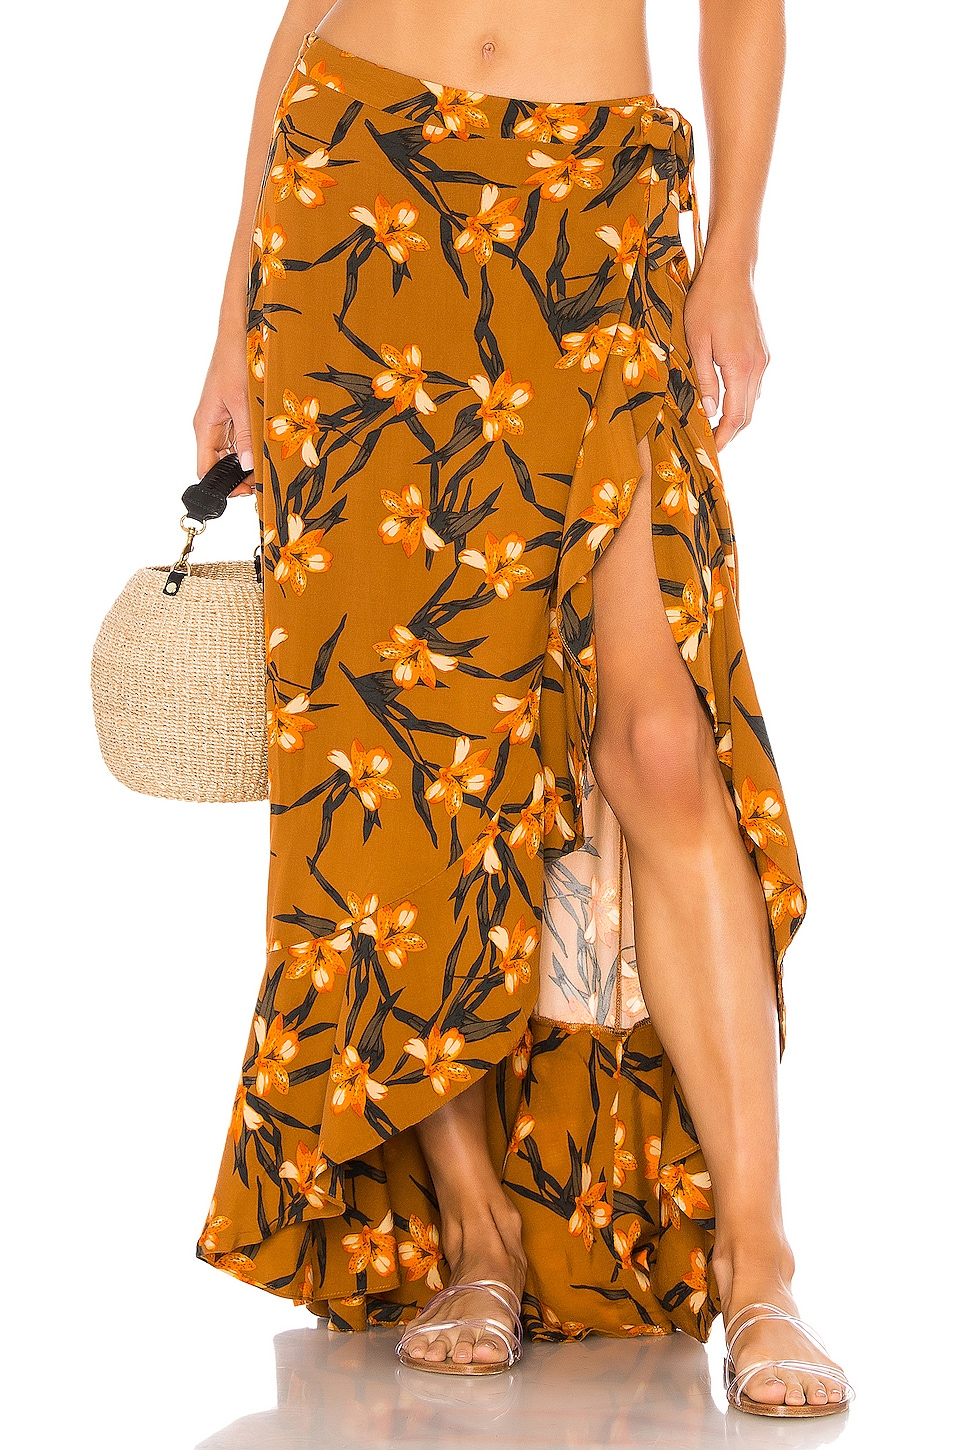 L*SPACE Desiree Skirt in Love Song Floral